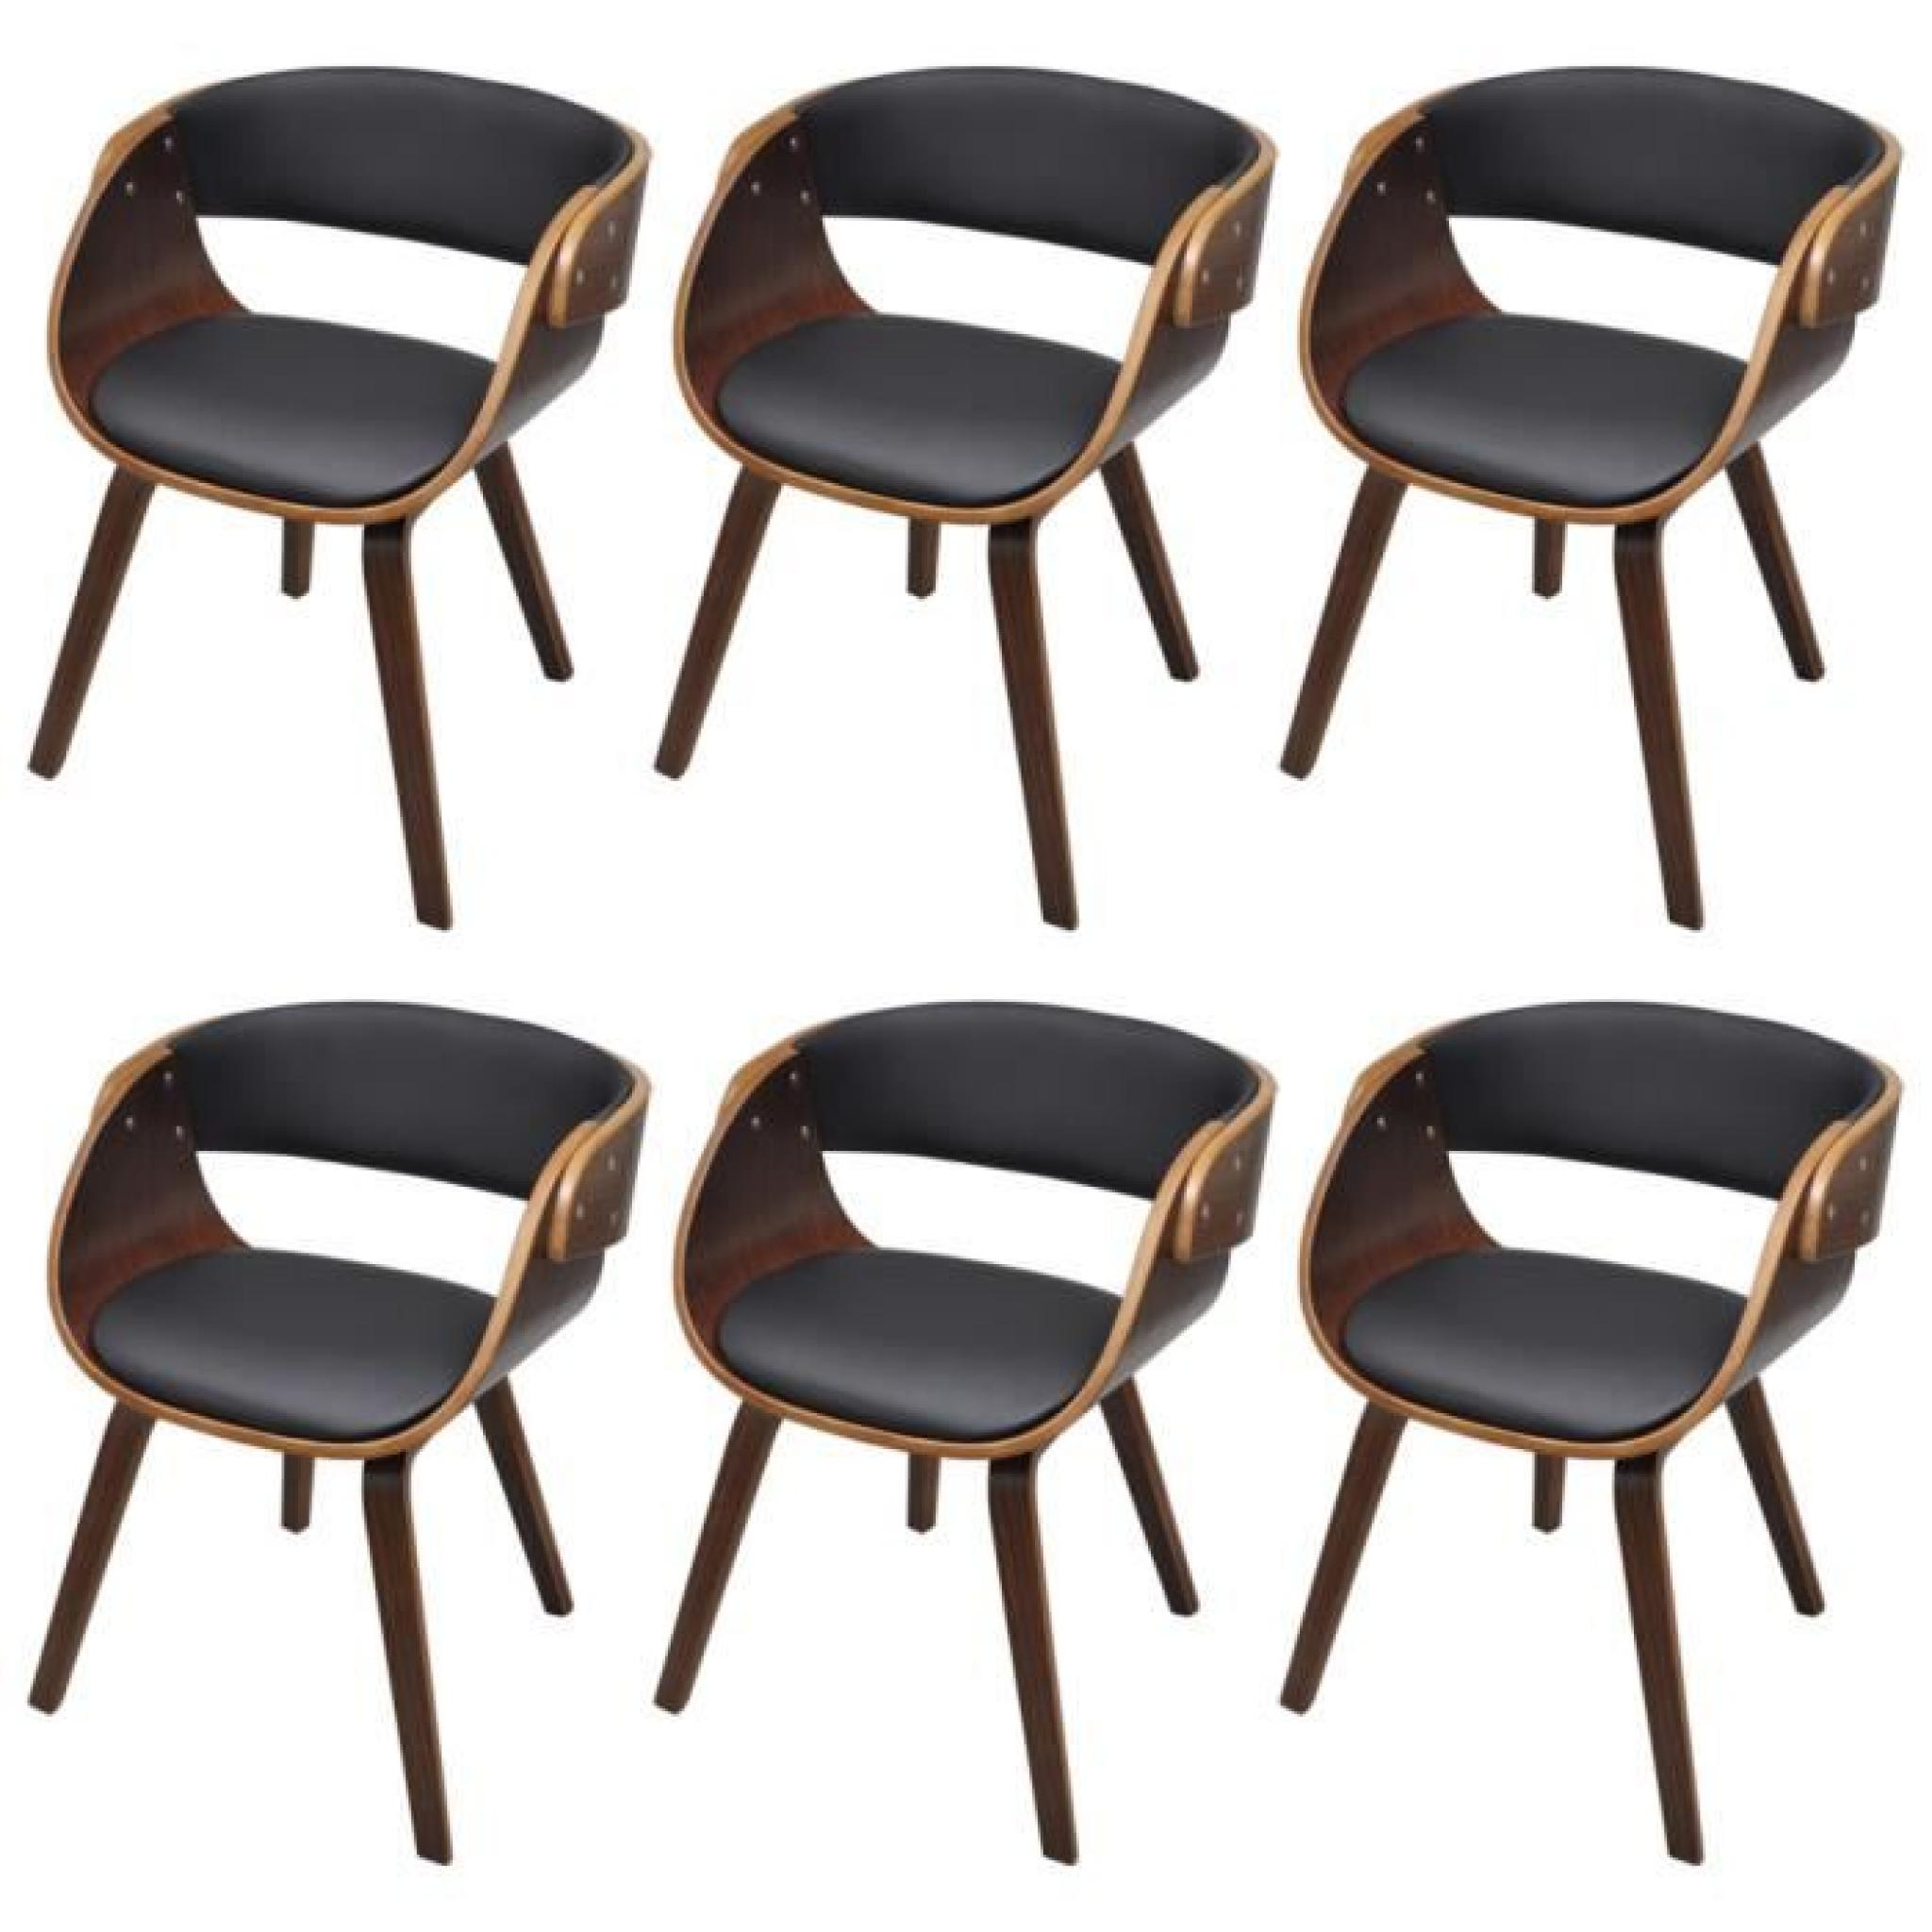 lot de 6 chaises accoudoirs salle manger brun stylashop achat vente chaise salle a manger. Black Bedroom Furniture Sets. Home Design Ideas